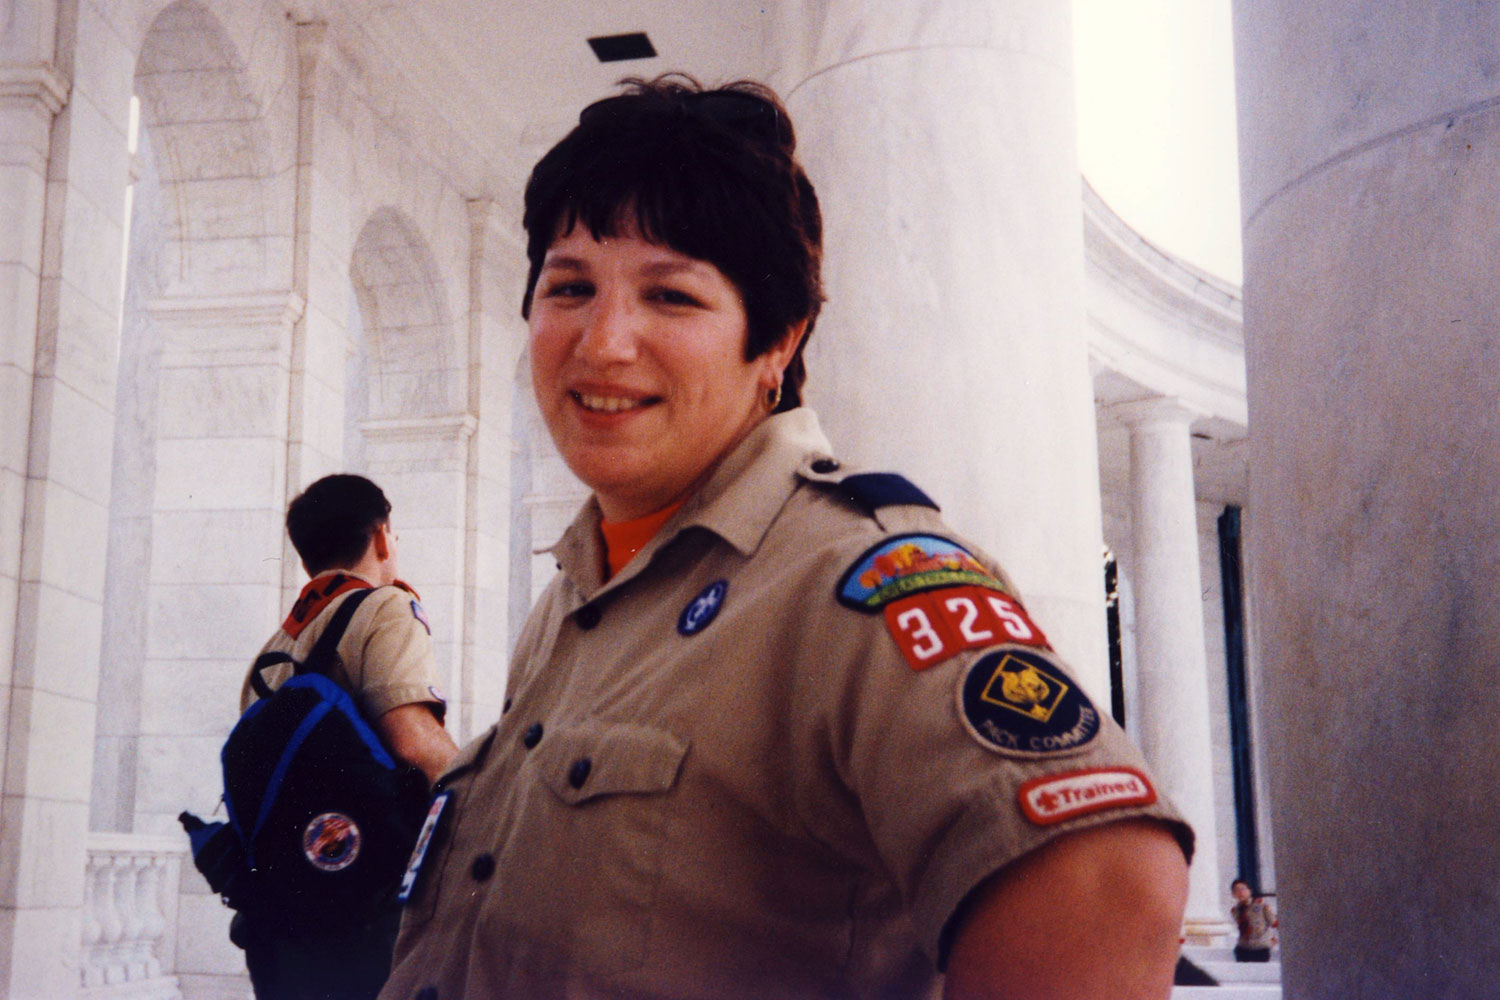 Boy Scouts Will Allow Girls: One Girl Scout's Perspective